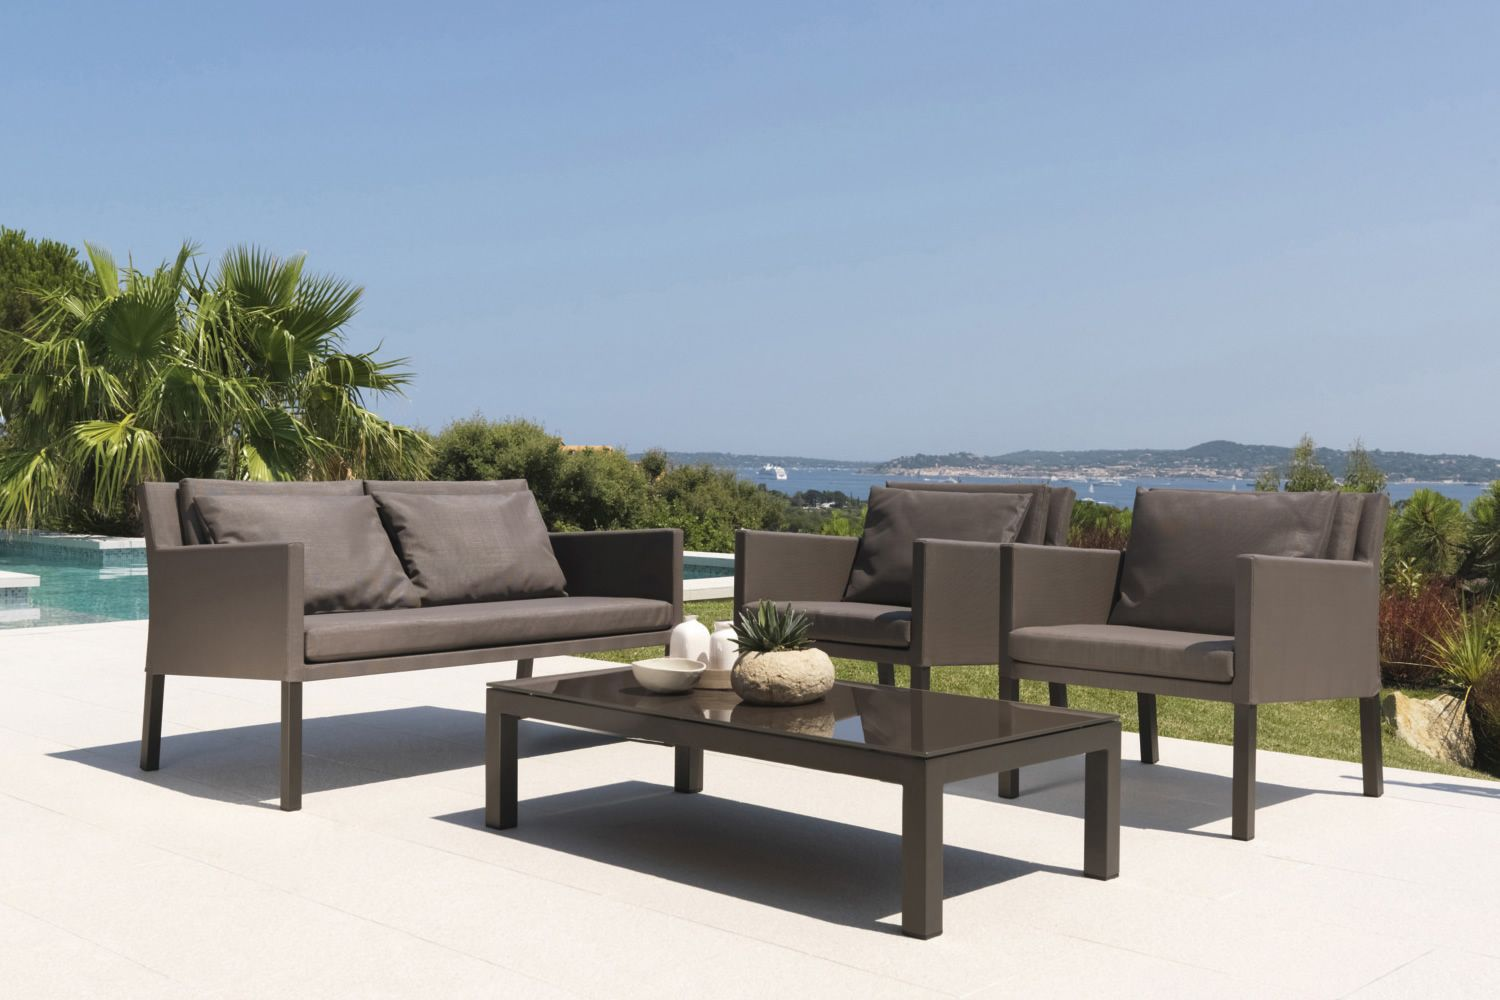 Step set juego de design para jard n sof 2 sillones y for Sofa jardin oferta